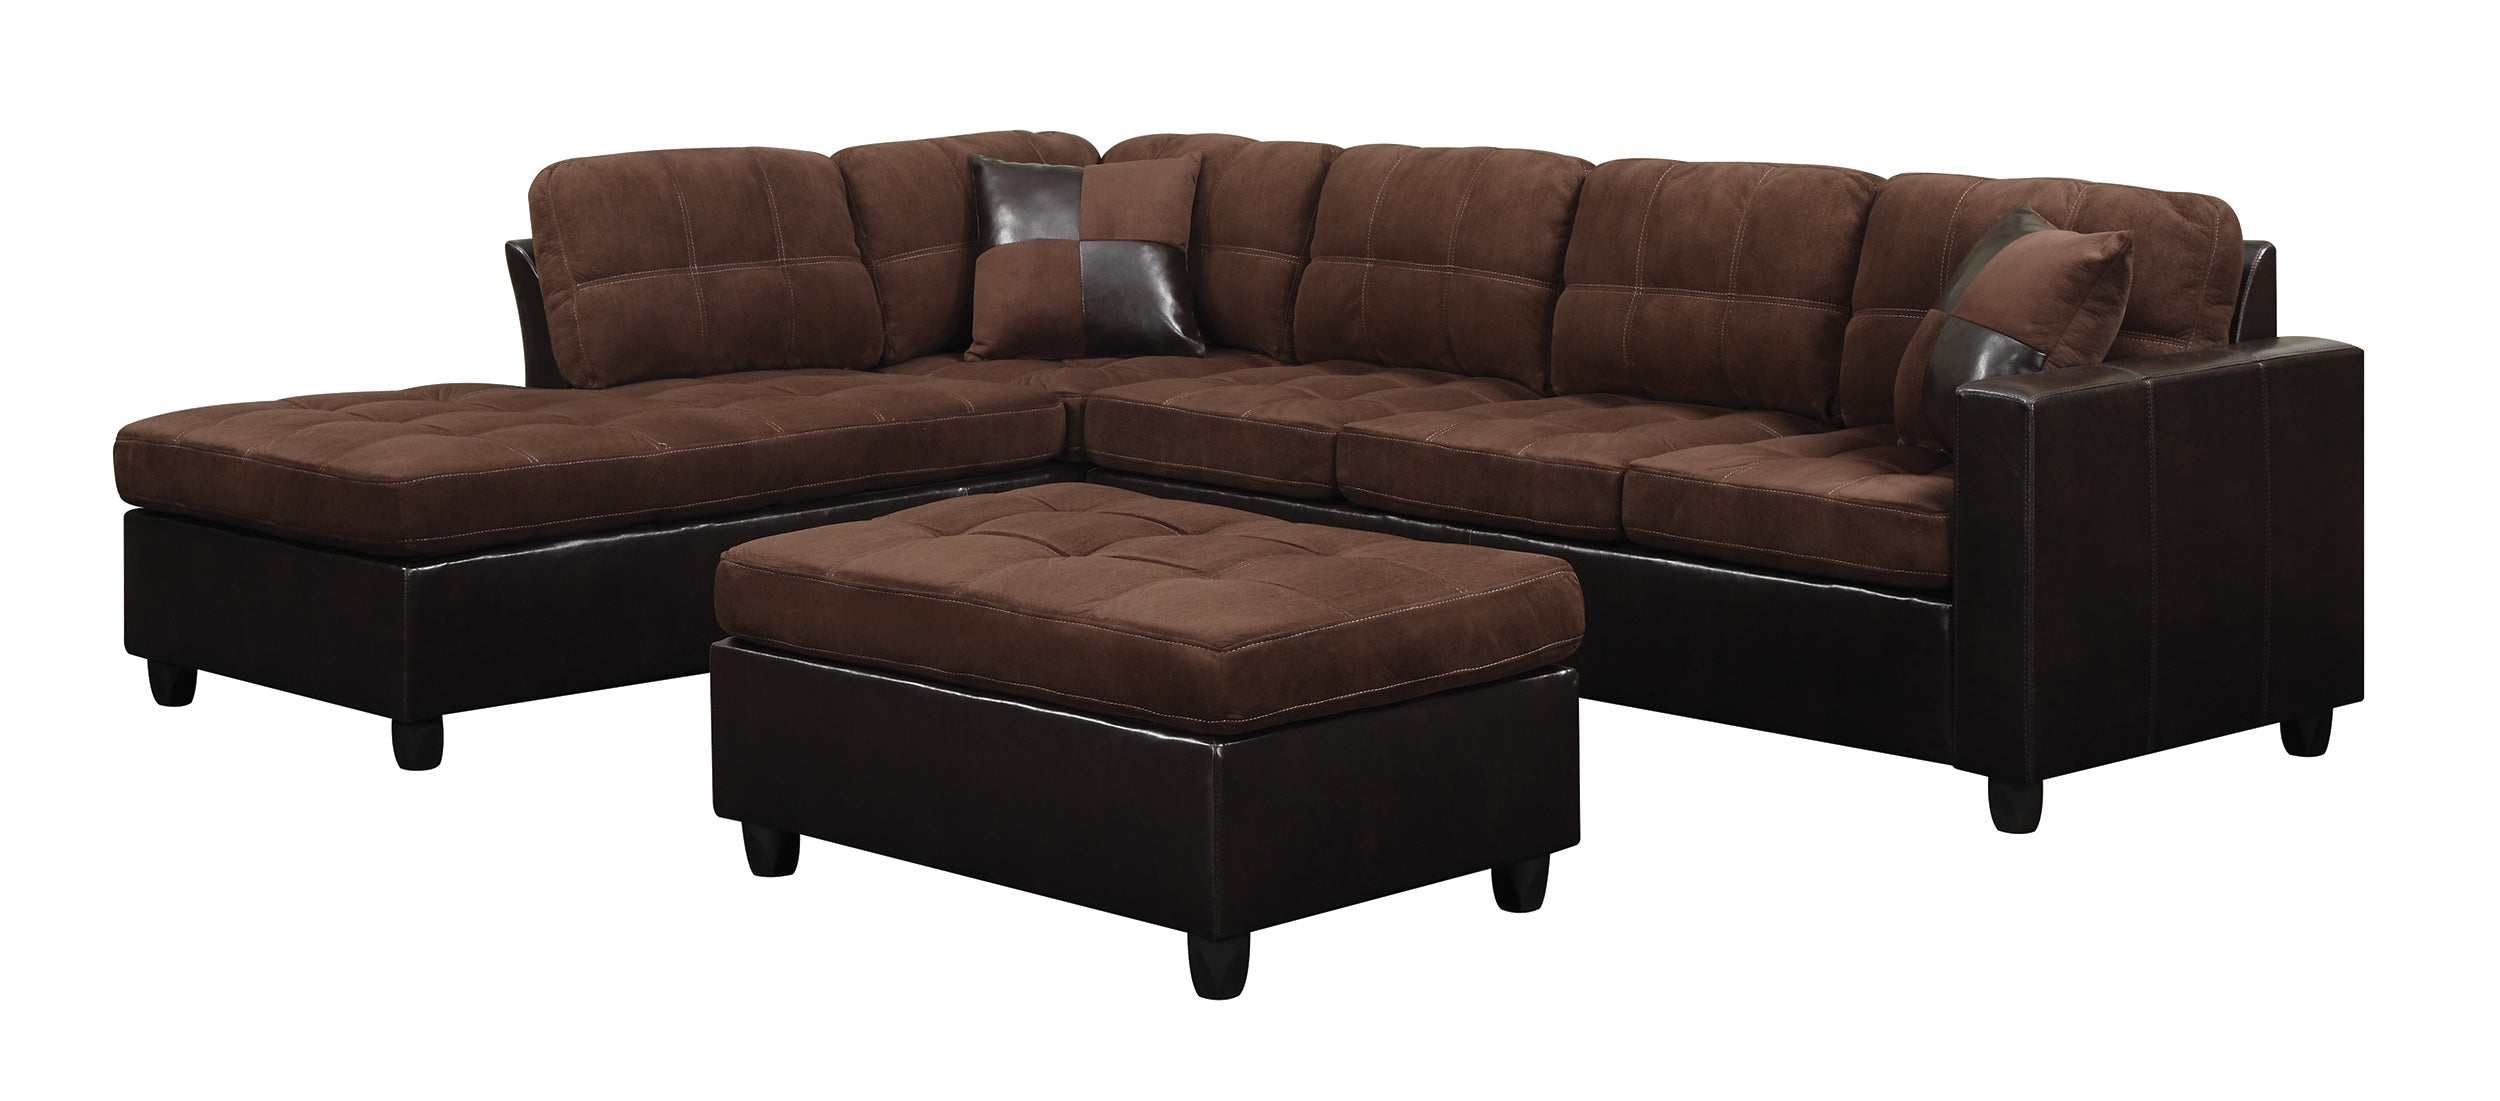 Coaster Mallory Chocolate Reversible Sectional Sofa Ottoman